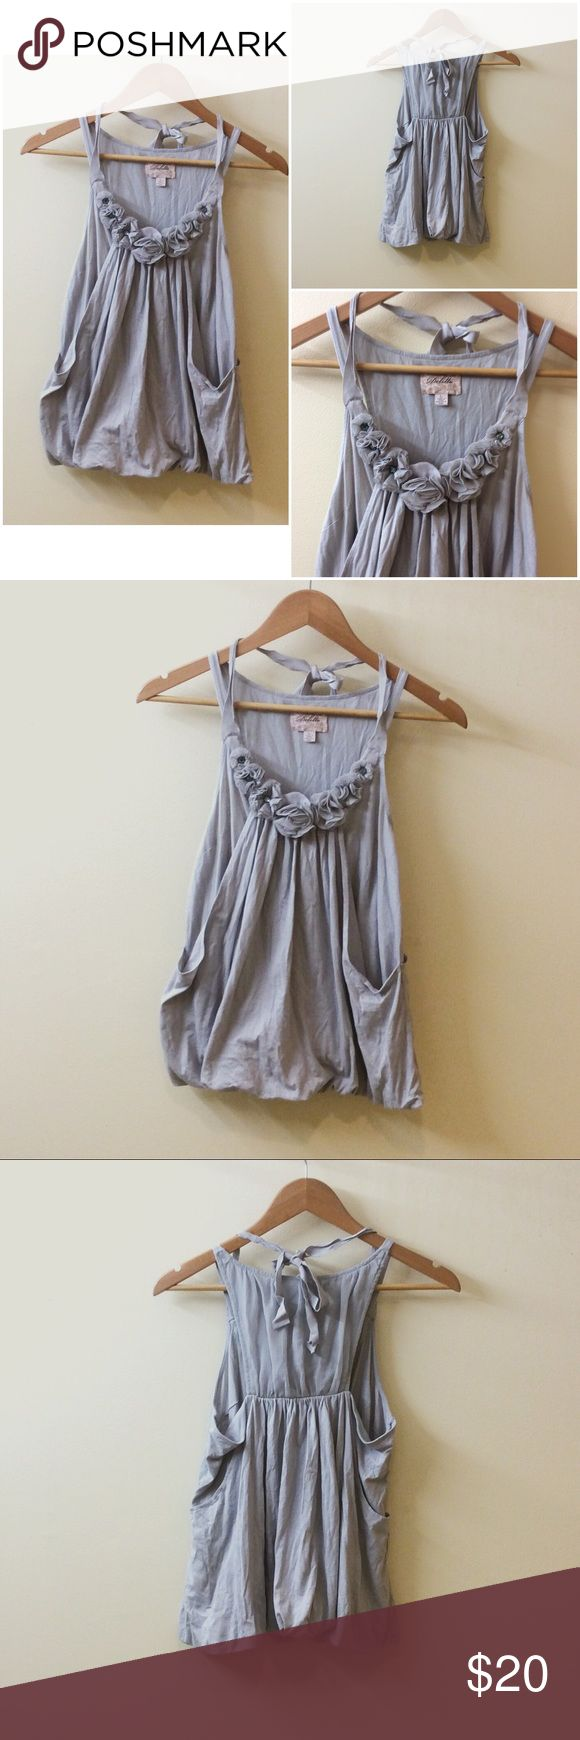 """Deletta, Anthropologie Flower Embellished Tank Beautiful bubble top with flower embellishments along the neckline and a ribbon halter top closure. This cute top looks great with a cute skirt or skinny jeans.  Length: 22"""" Armpit to armpit: 16""""  ALL ITEMS COME FROM A SMOKE AND PET FREE HOME. Anthropologie Tops Blouses"""